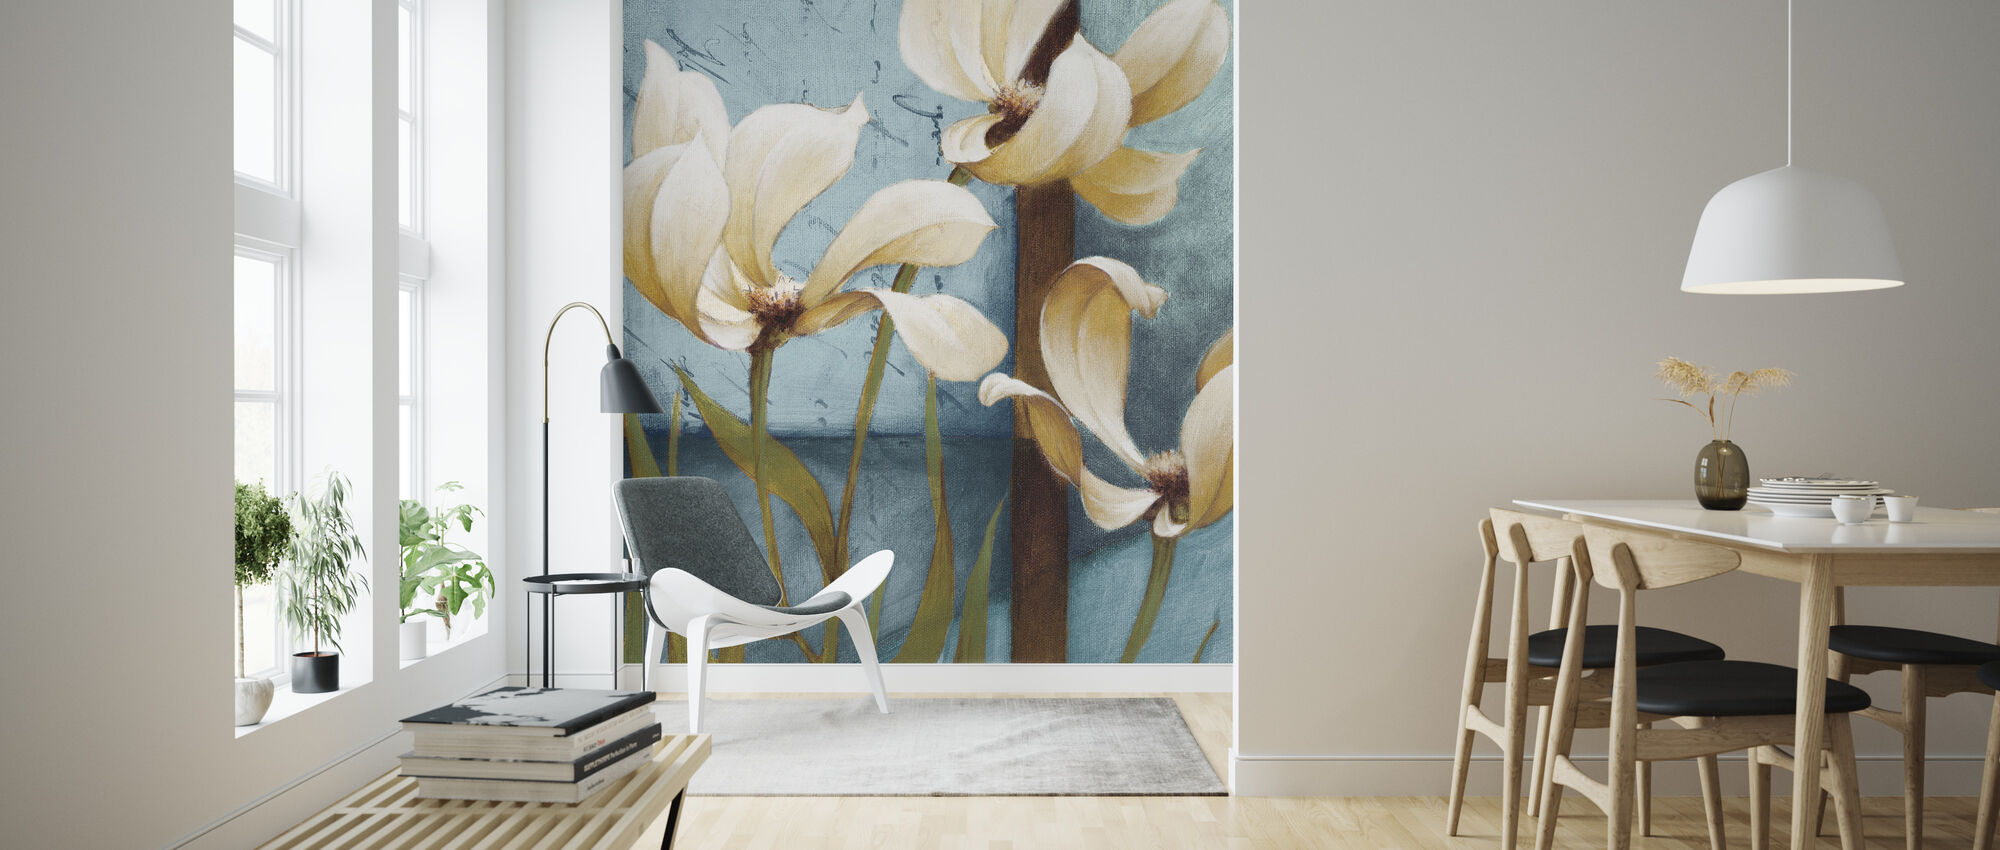 Magnolia Painting - Wallpaper - Living Room